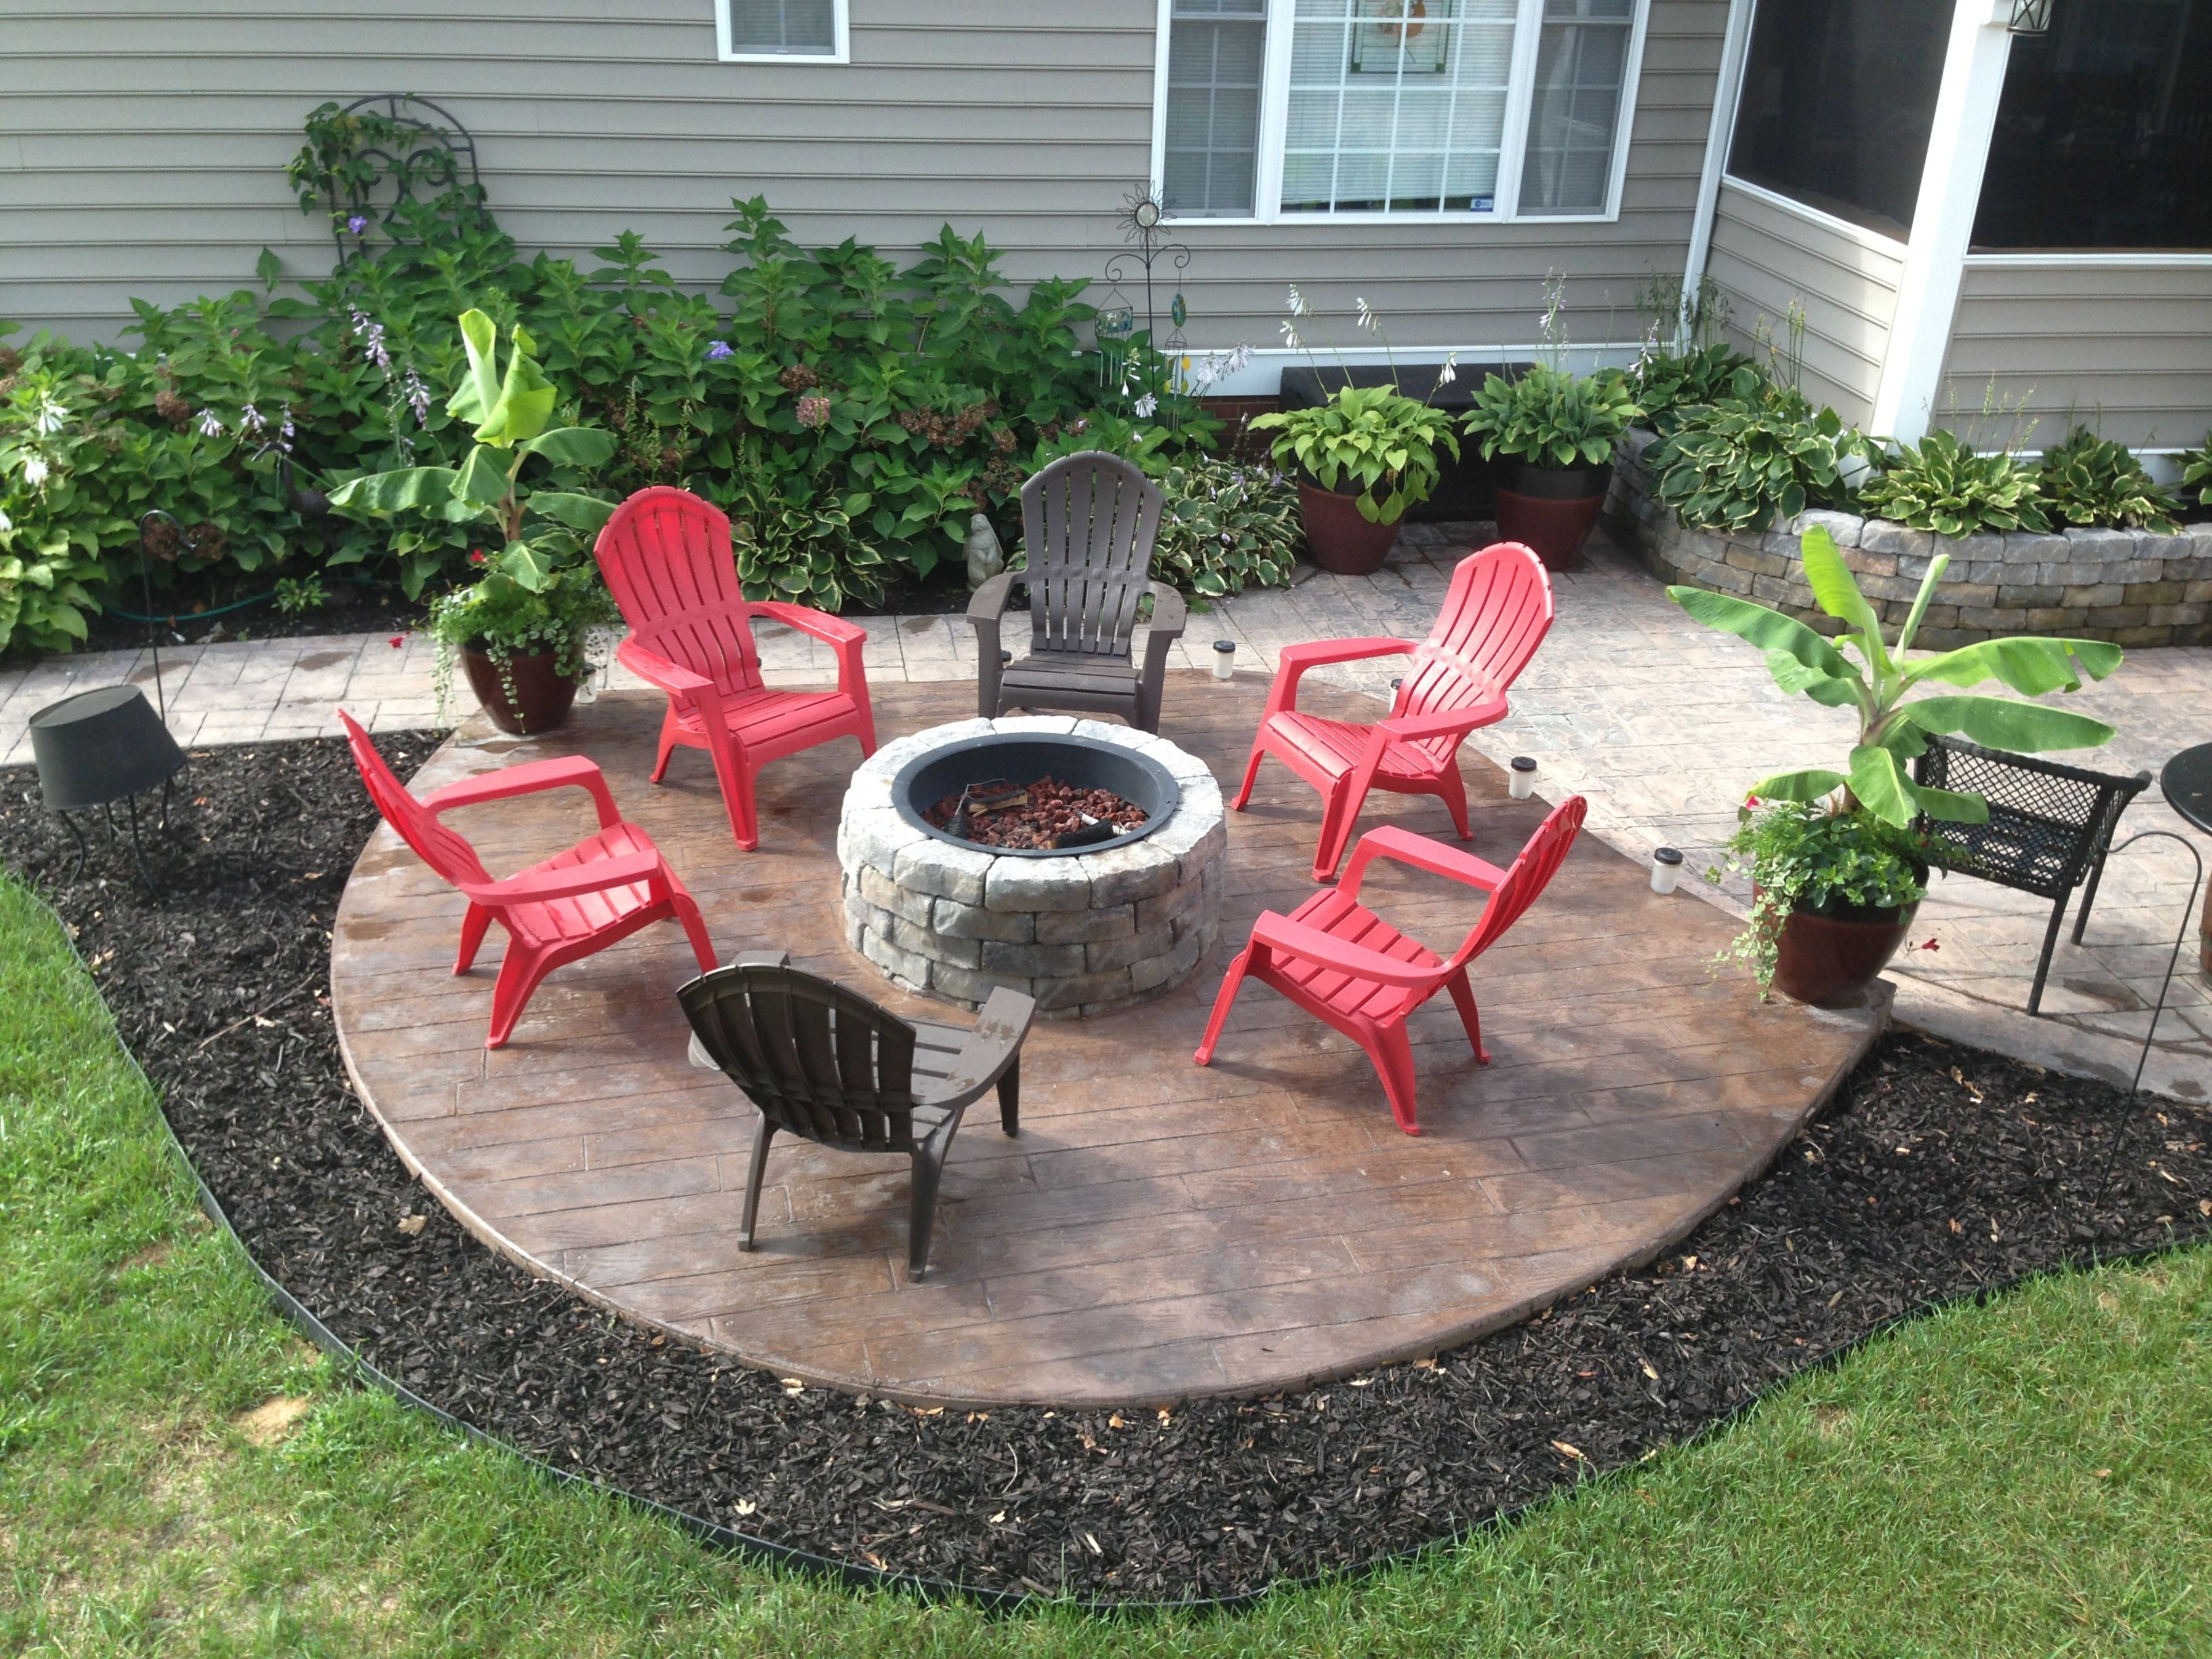 New Stamped Concrete Patio With Built In Fire Pit What A Great